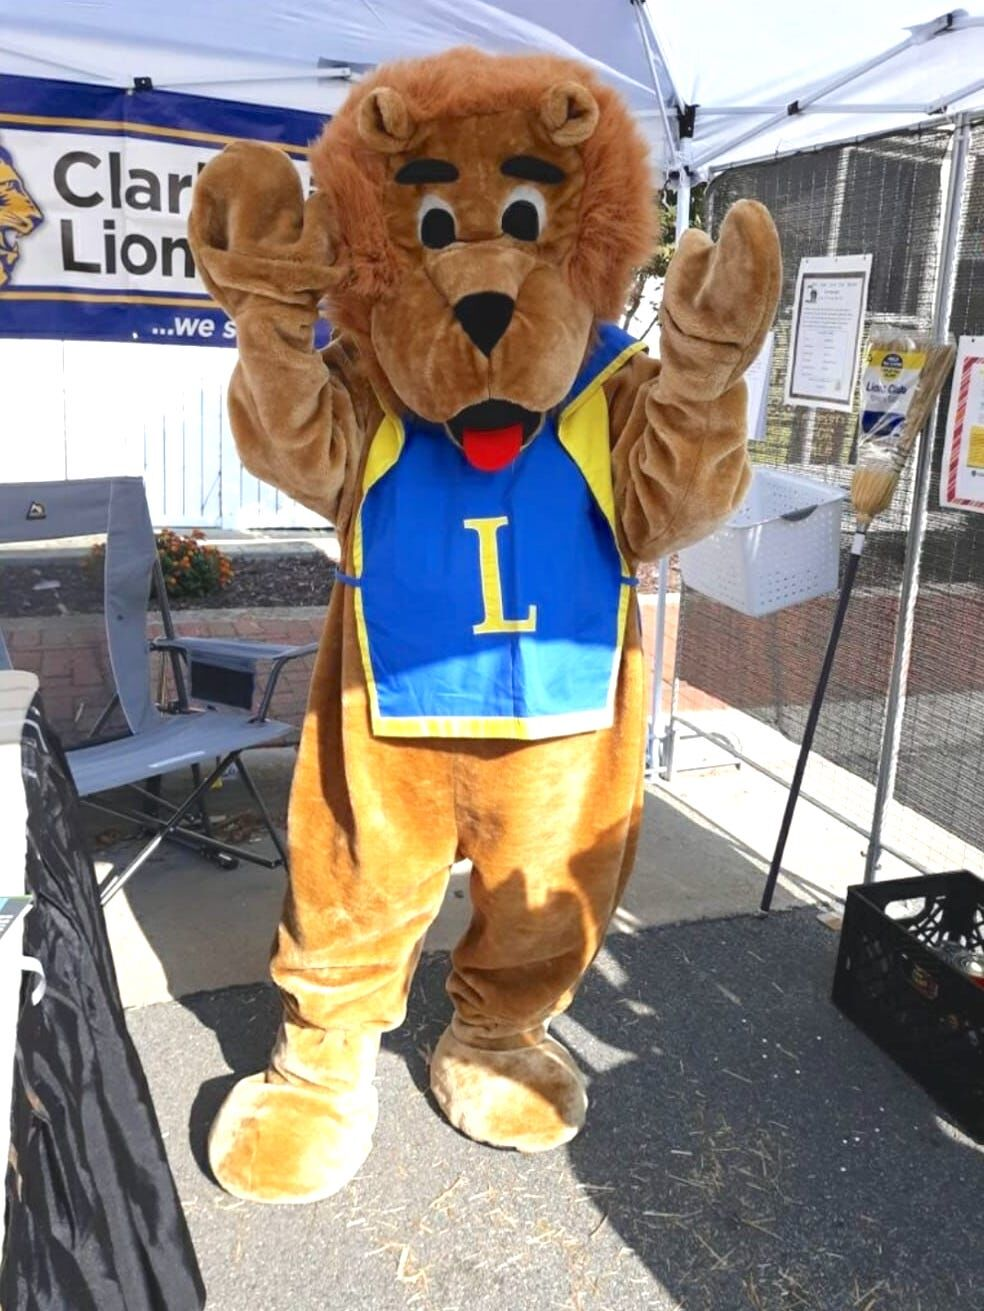 Clarksville Lions share initiatives at the Harvest Days Festival